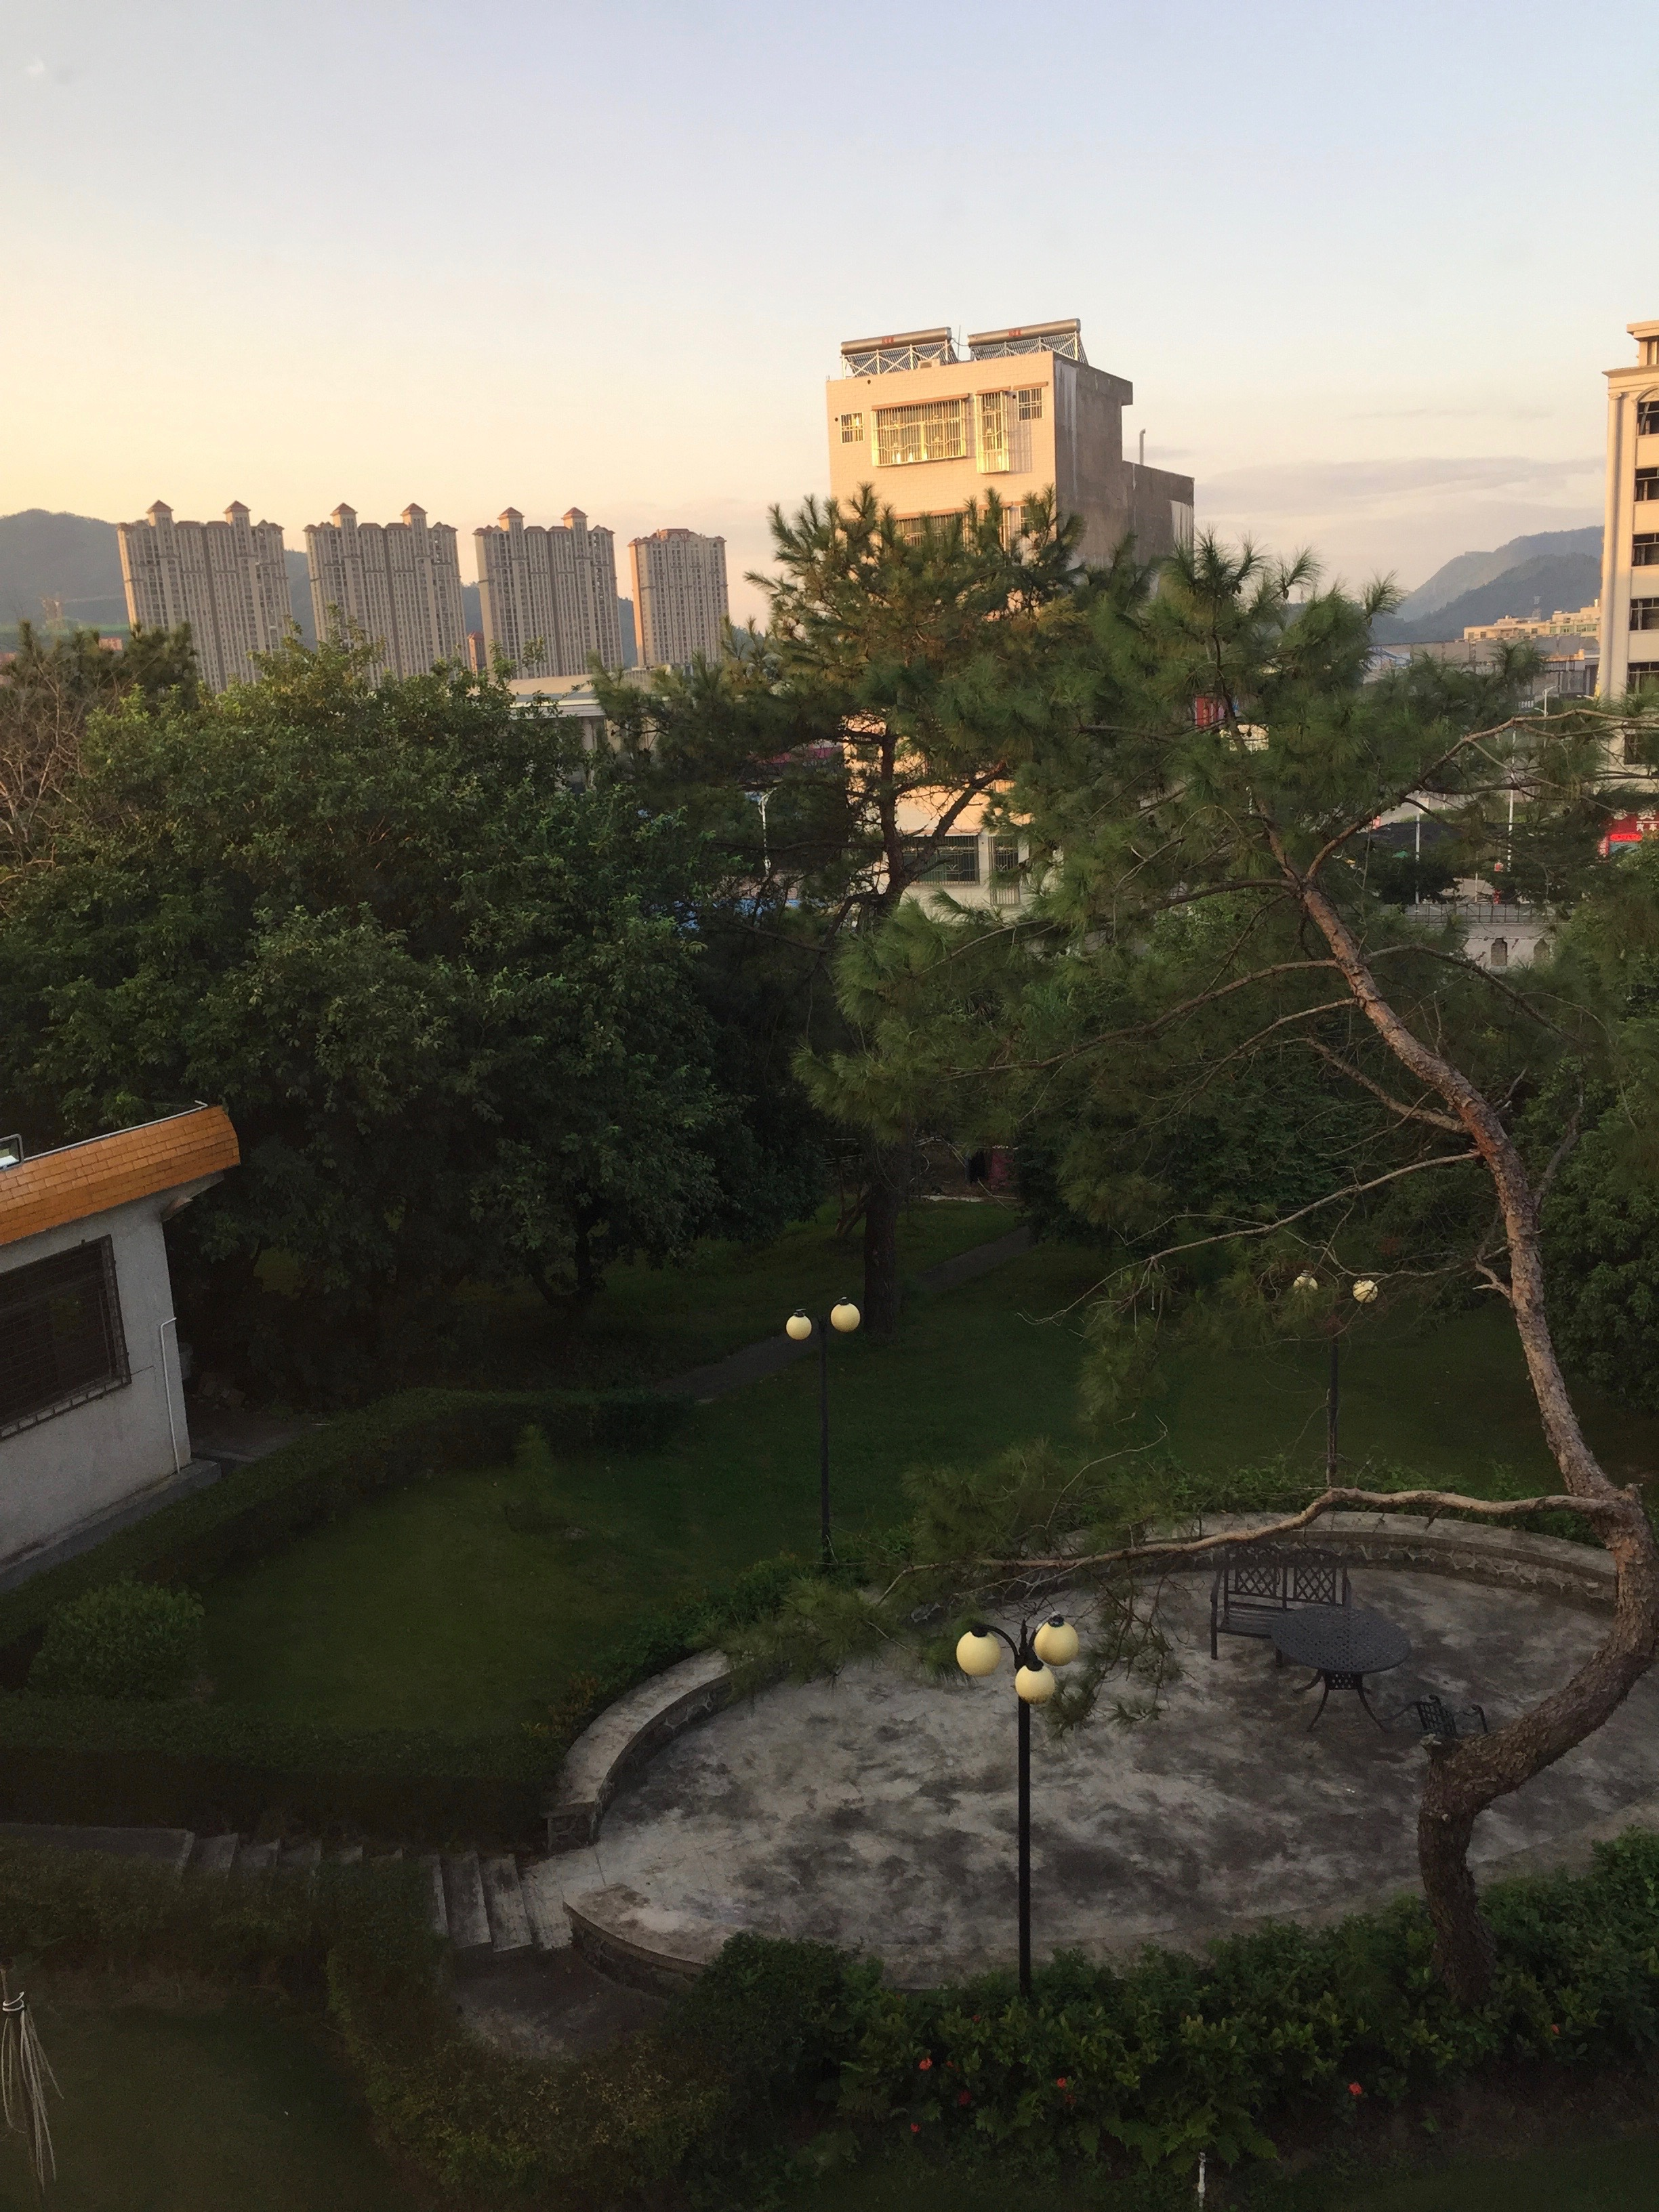 This was an early morning view from my dorm room. You can see the newly built high rises in Pingshan in the distance. The rate of construction was incredible! Many of these buildings sit empty as just a shells without even any windows. It's a little surreal to see rows and rows of these buildings.